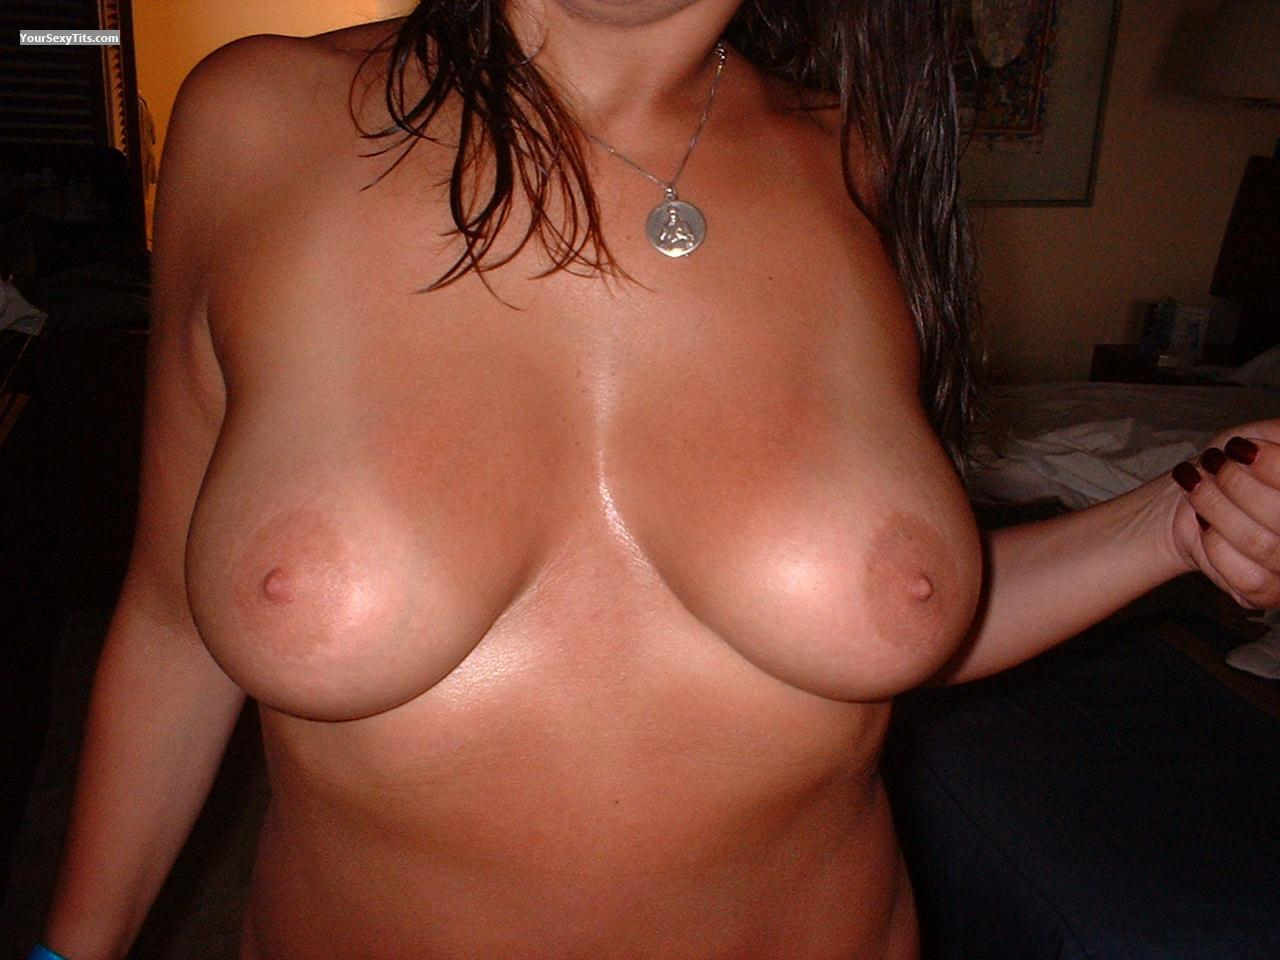 Tit Flash: Big Tits - Hotreal from United States